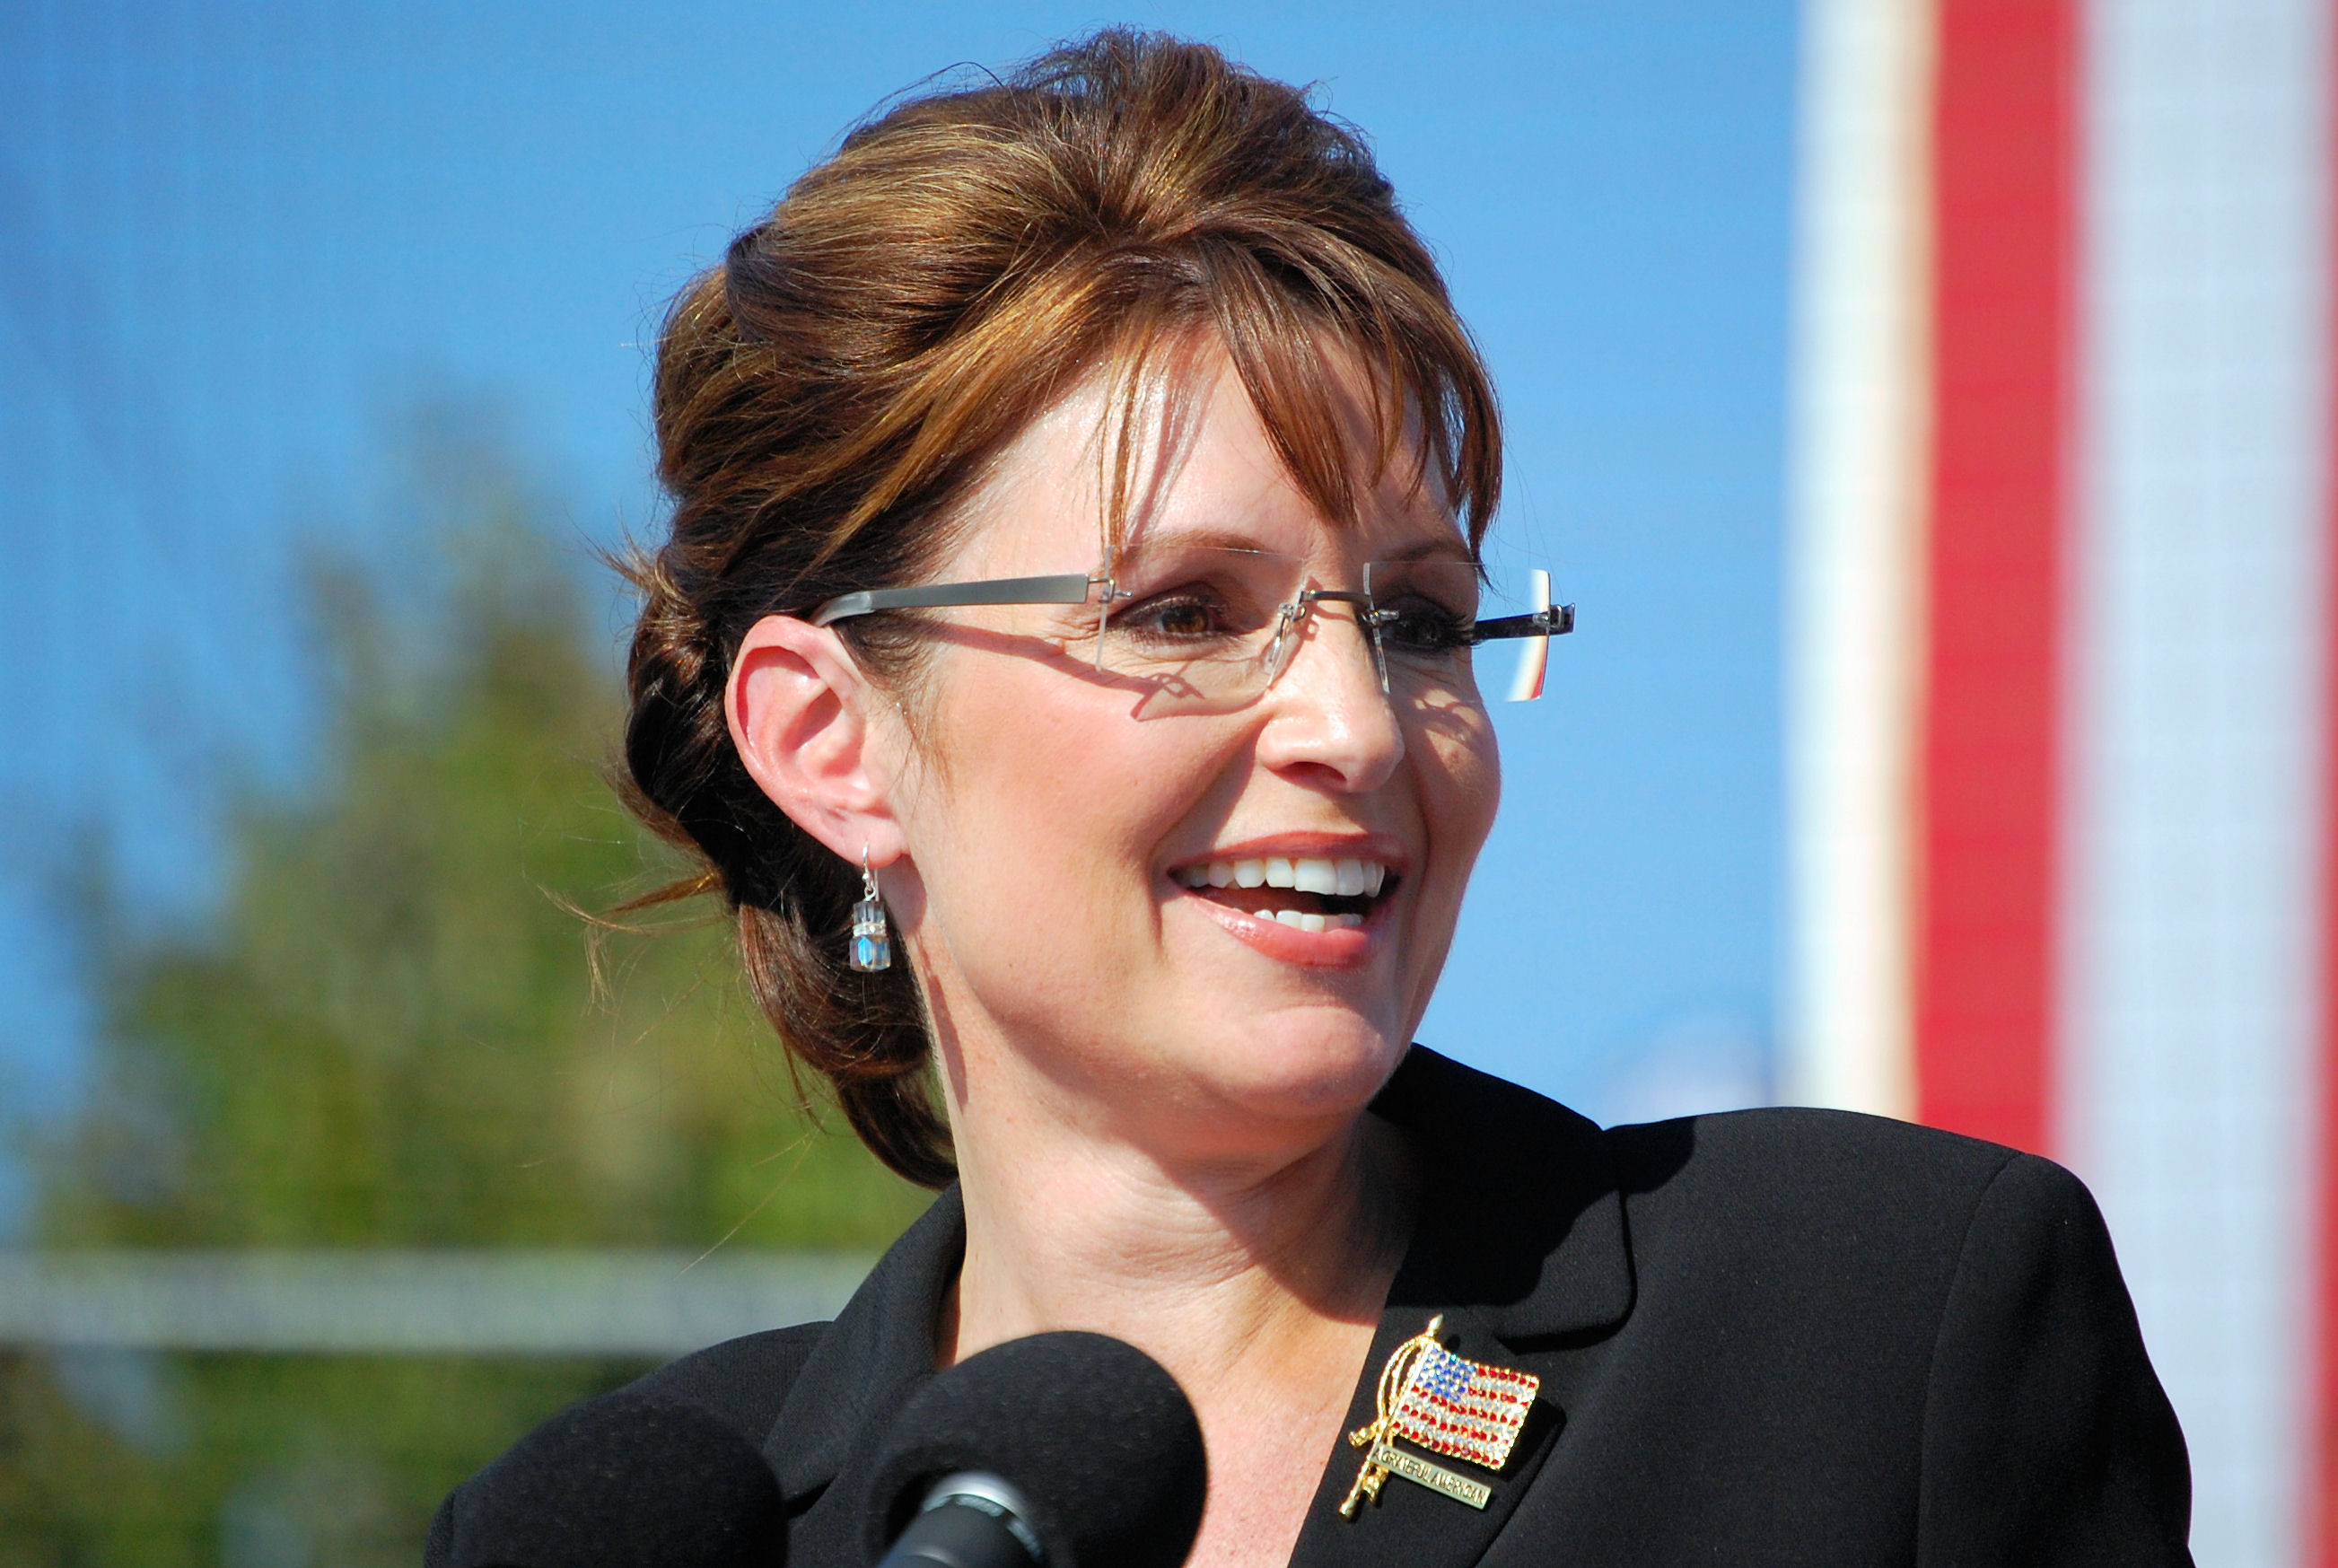 braless Pictures Sarah Palin naked photo 2017